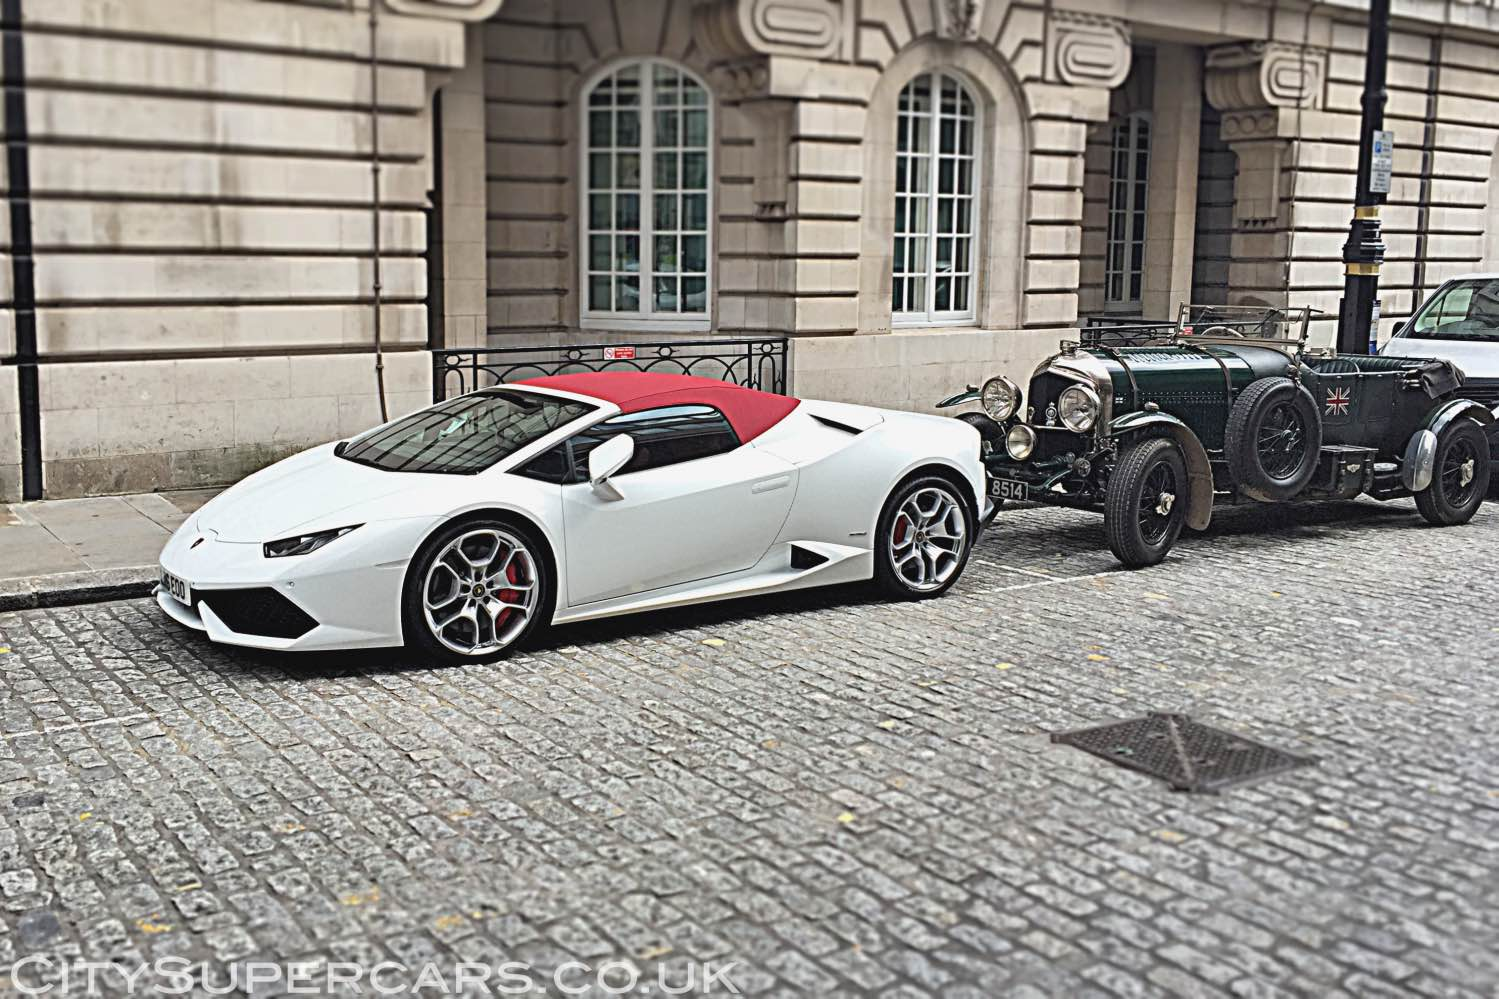 Lamborghini Huracan Spyder Lp 610 4 163 3000 Weekend City